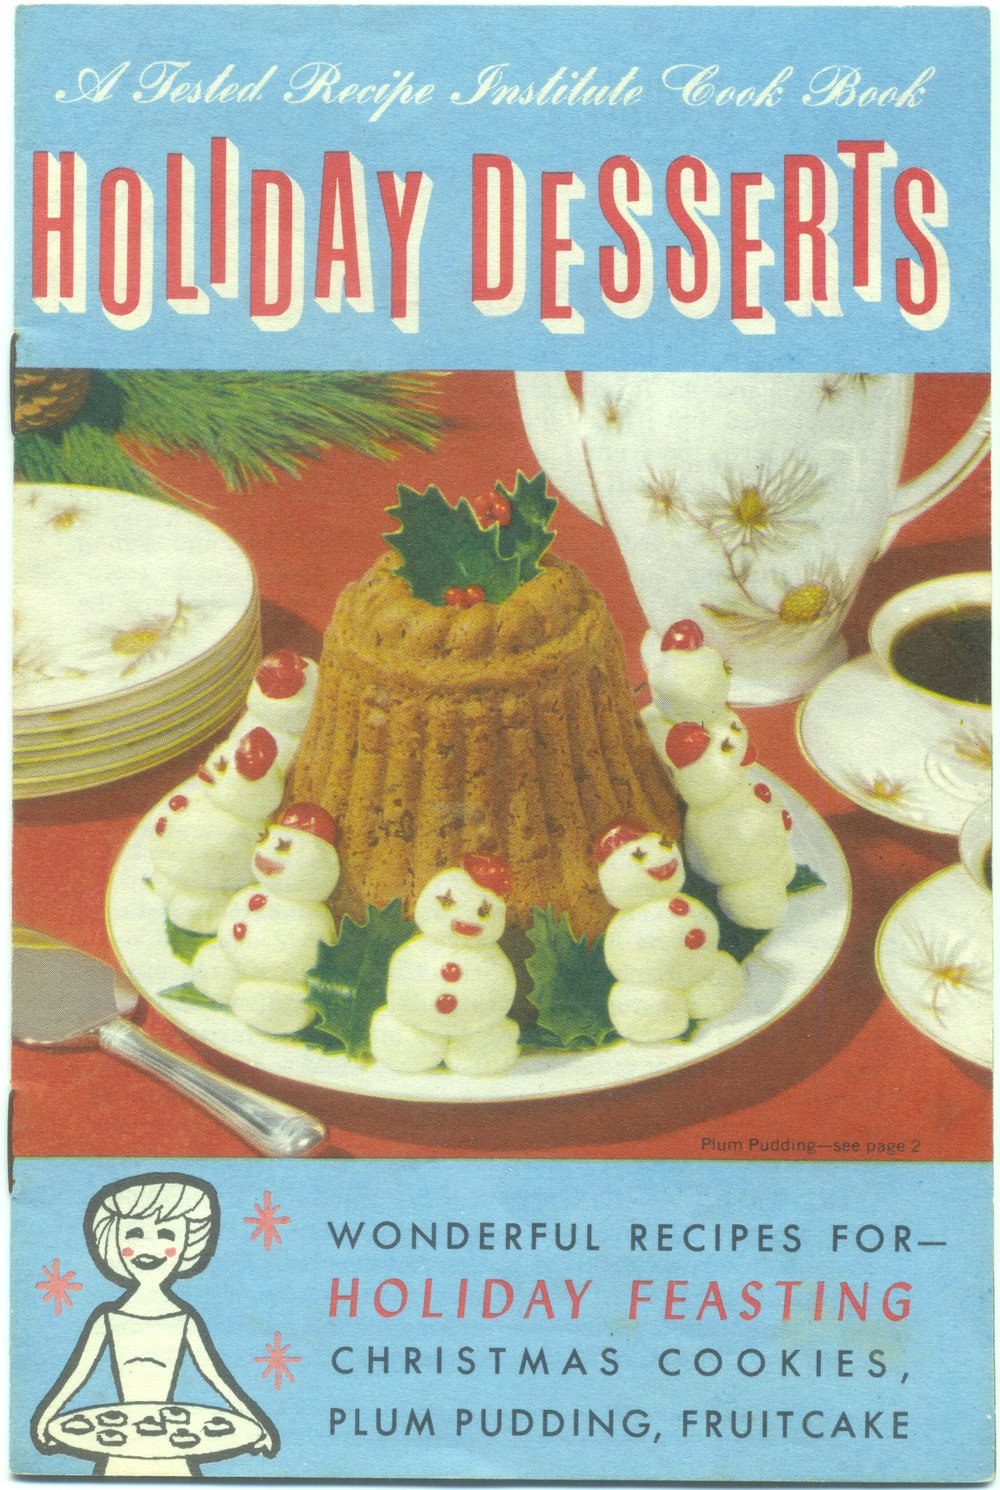 1964 Holiday Desserts